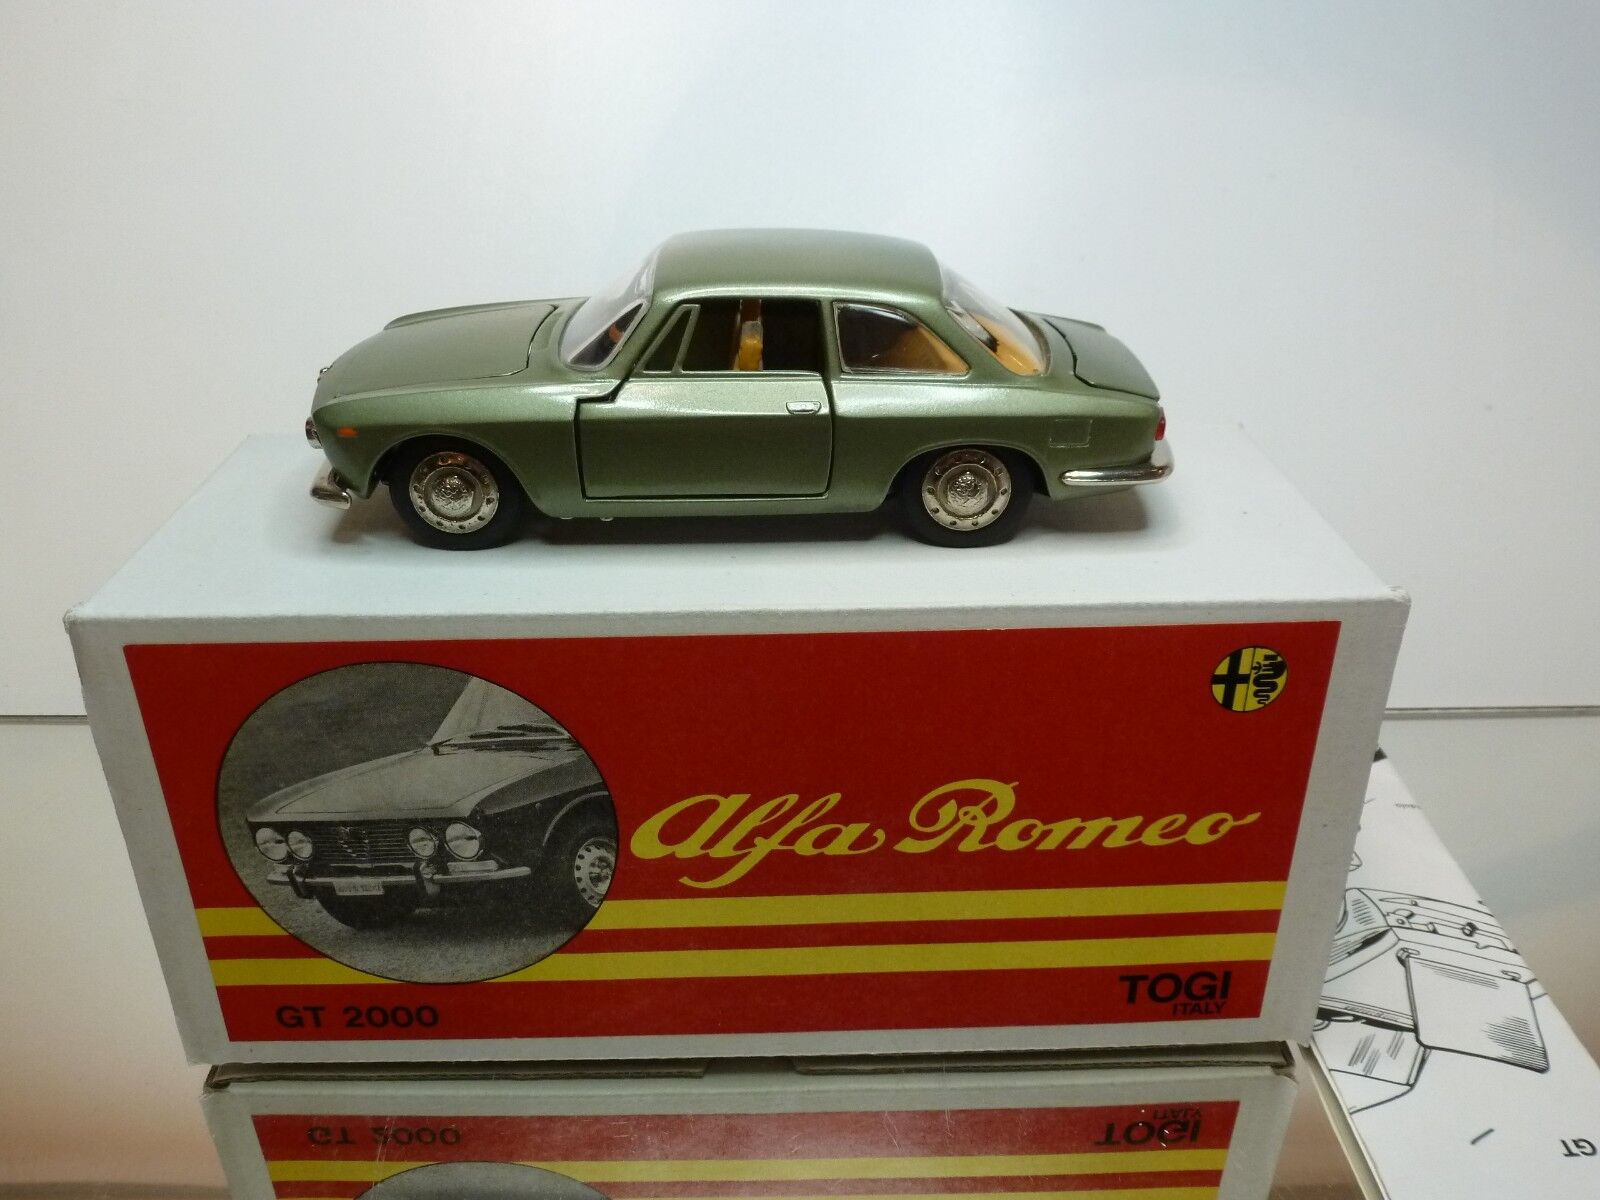 TOGI 8 65 ALFA ROMEO GIULIA GT 2000 - vert METALLIC 1 23 - GOOD IN BOX